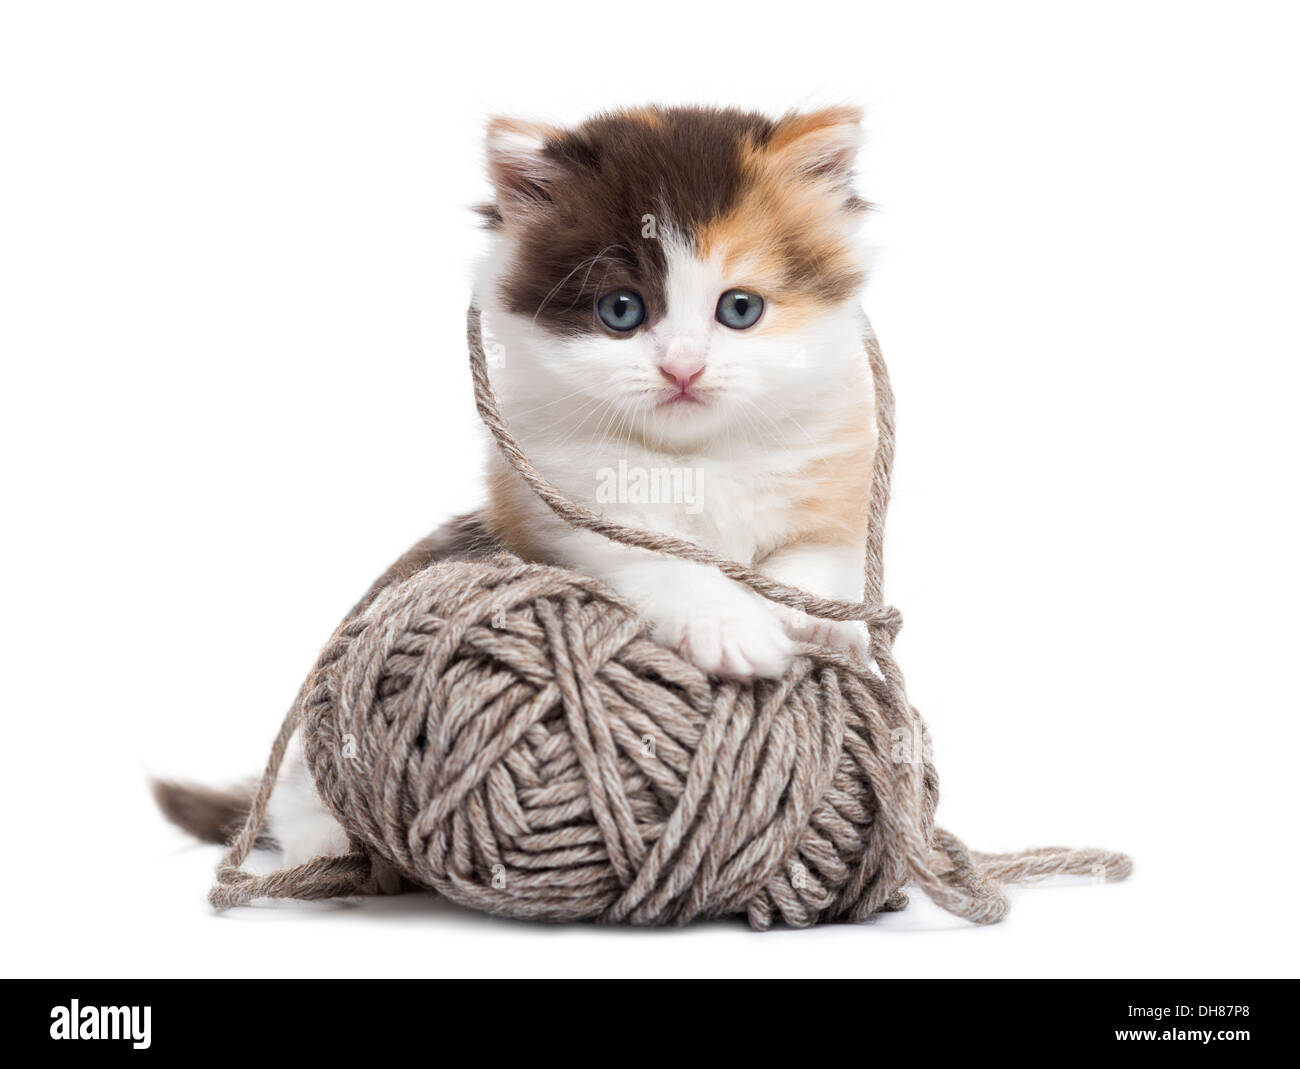 Front view of a Highland straight kitten playing with a wool ball against white background - Stock Image